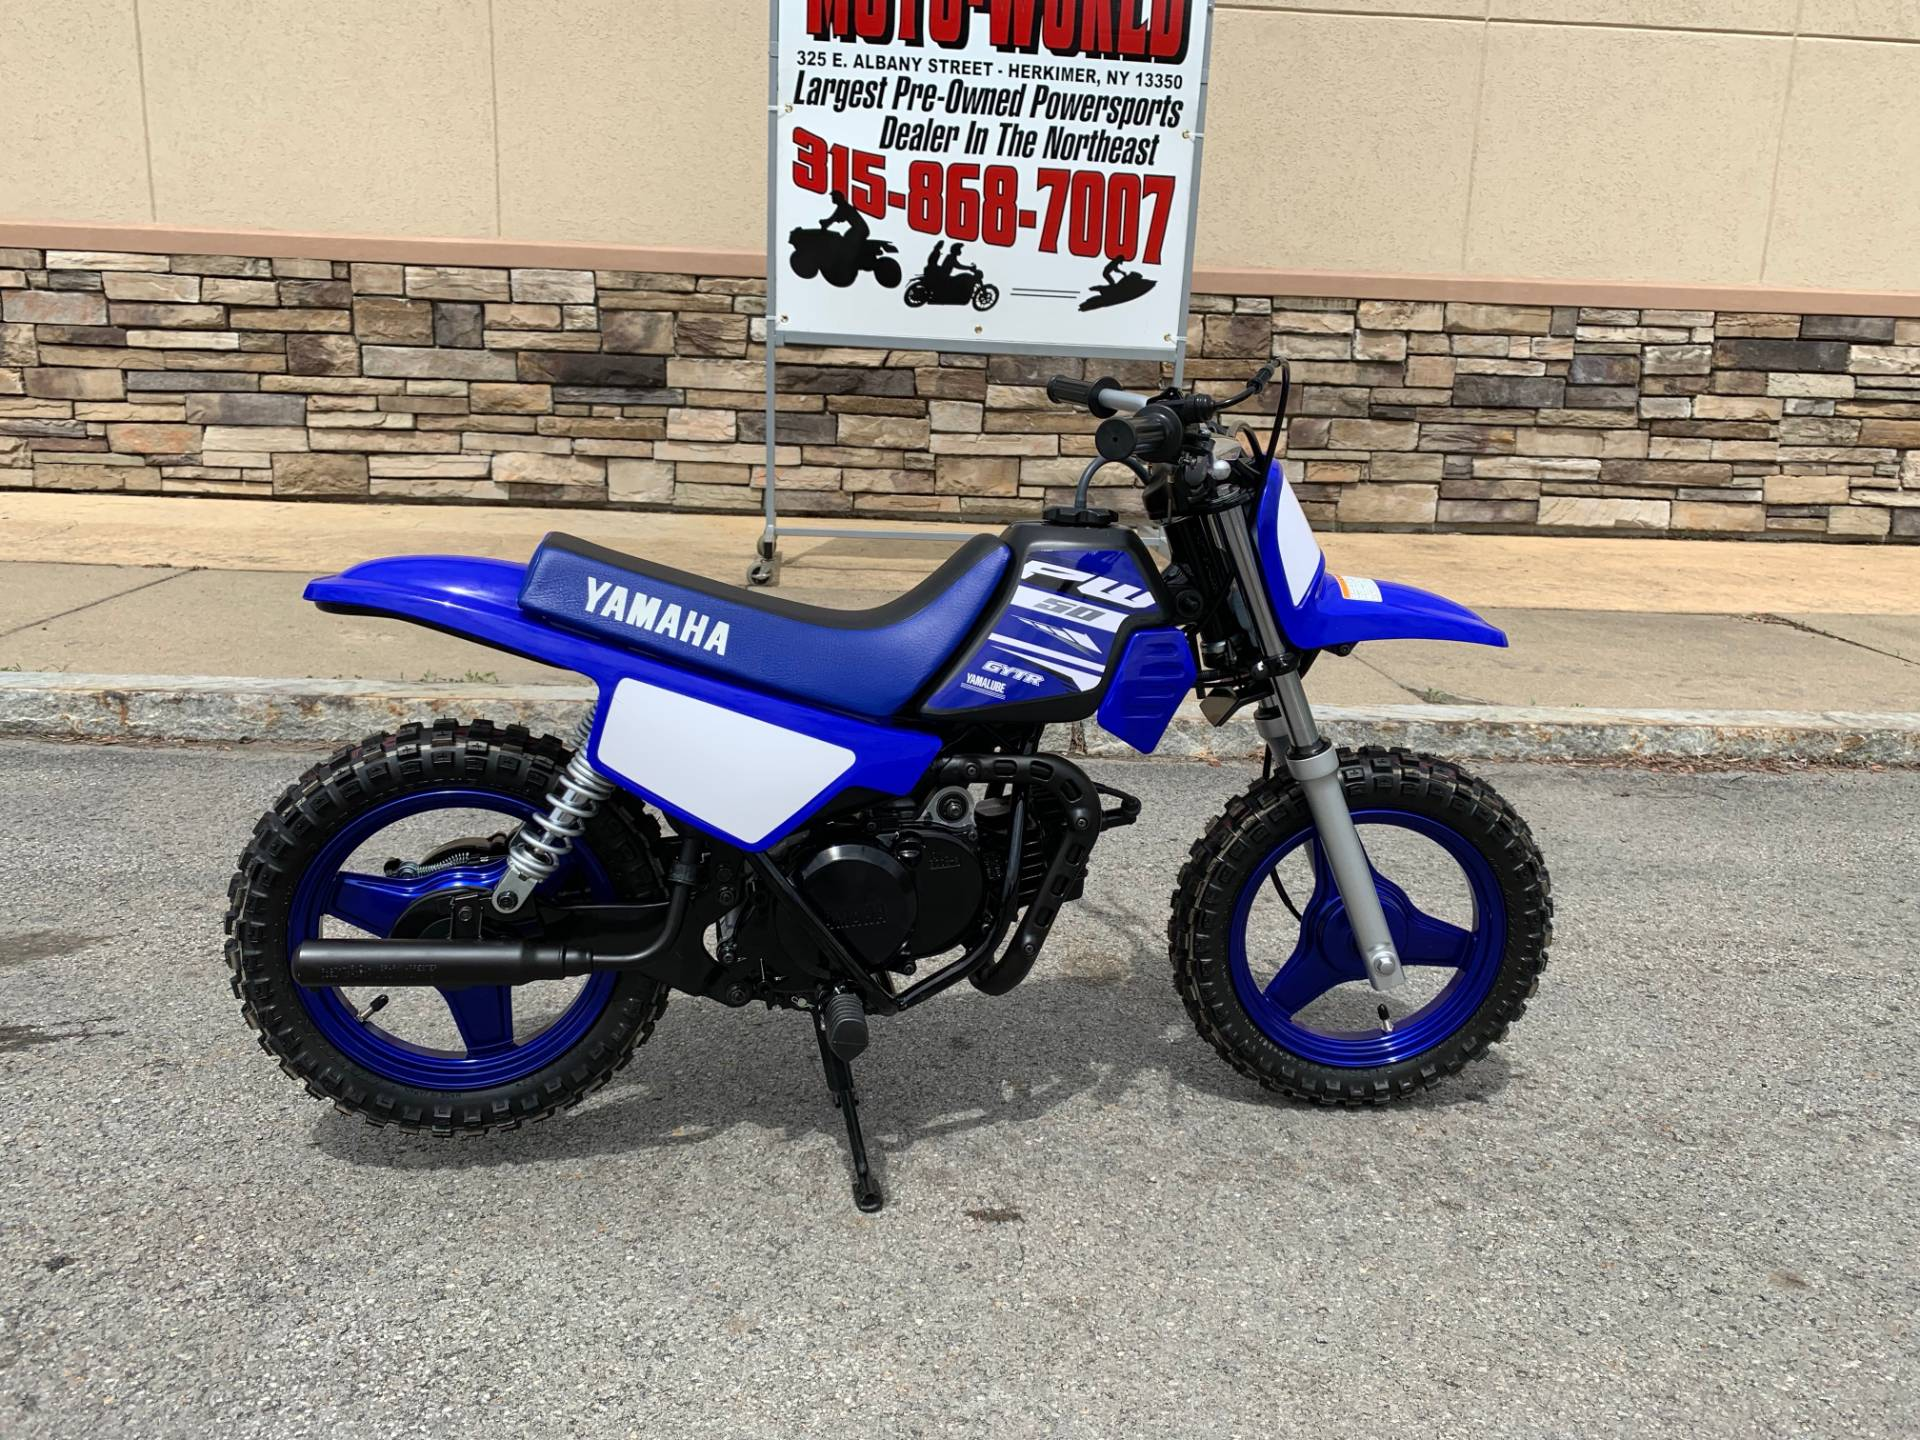 2018 Yamaha PW50 in Herkimer, New York - Photo 1